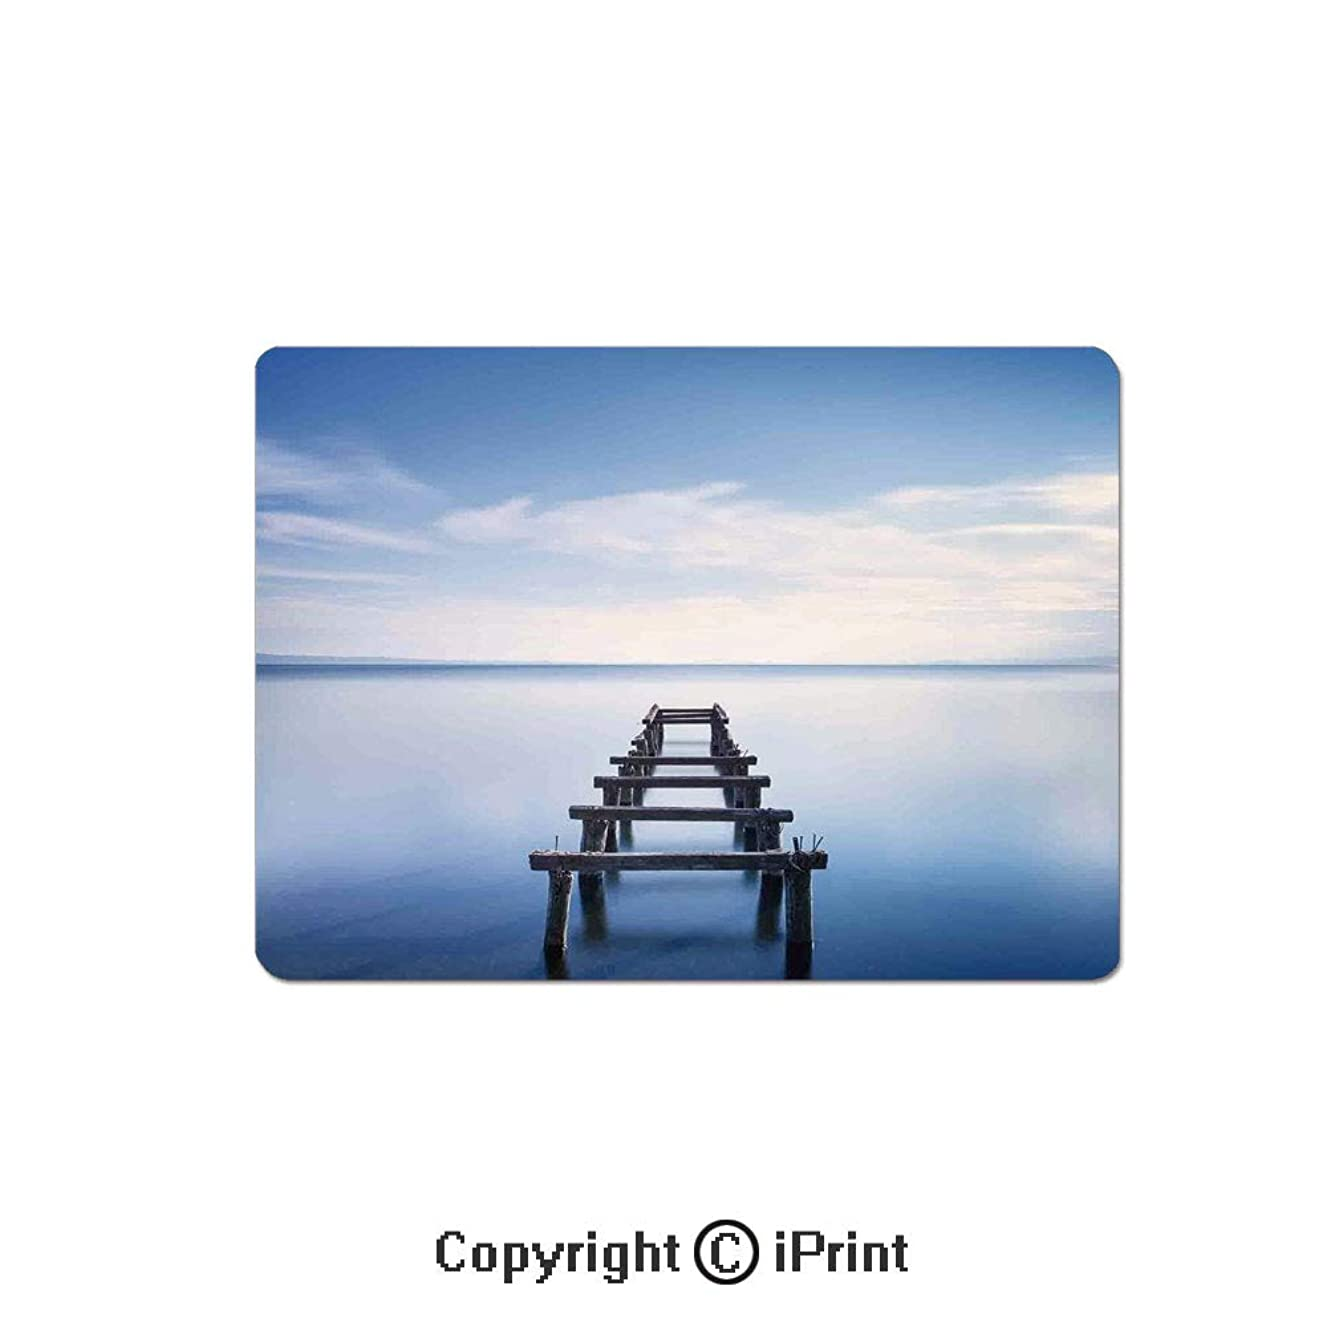 Gaming Mouse Pad Custom,Photo of an Old Jetty in The Lake with Blue Sky Horizon Landscape Calm Nature Print Decorative Mouse Mat,Non-Slip Rubber Base Mousepad,7.9x9.5 inch,Blue White Brown